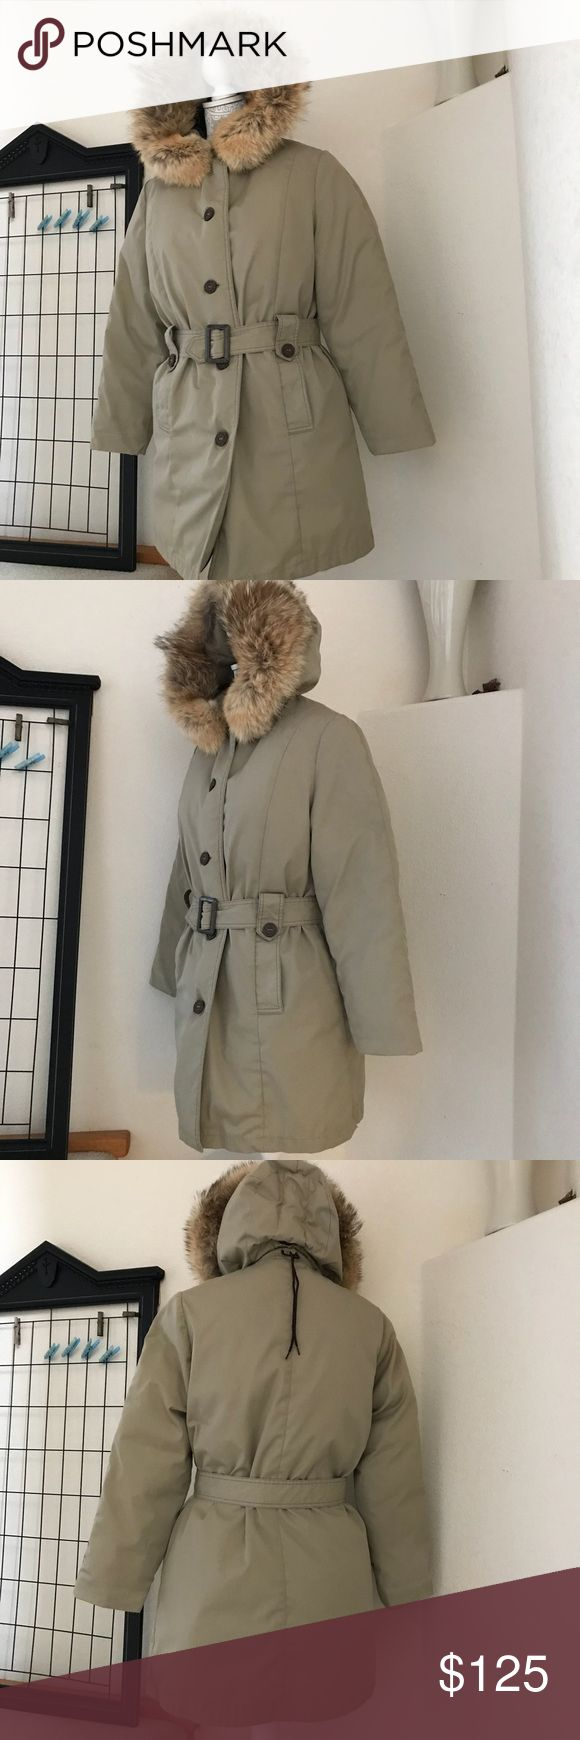 Eddie Bauer Premium Goose Down, Fur Trim Parka Premium quality, Eddie Bauer of Seattle, Puffer Coat or Parka. Recently Dry Cleaned and ready to wear for cold to severe winter climates. Real Fur Trim. Size 10, or s women's Medium Eddie Bauer Jackets & Coats Puffers